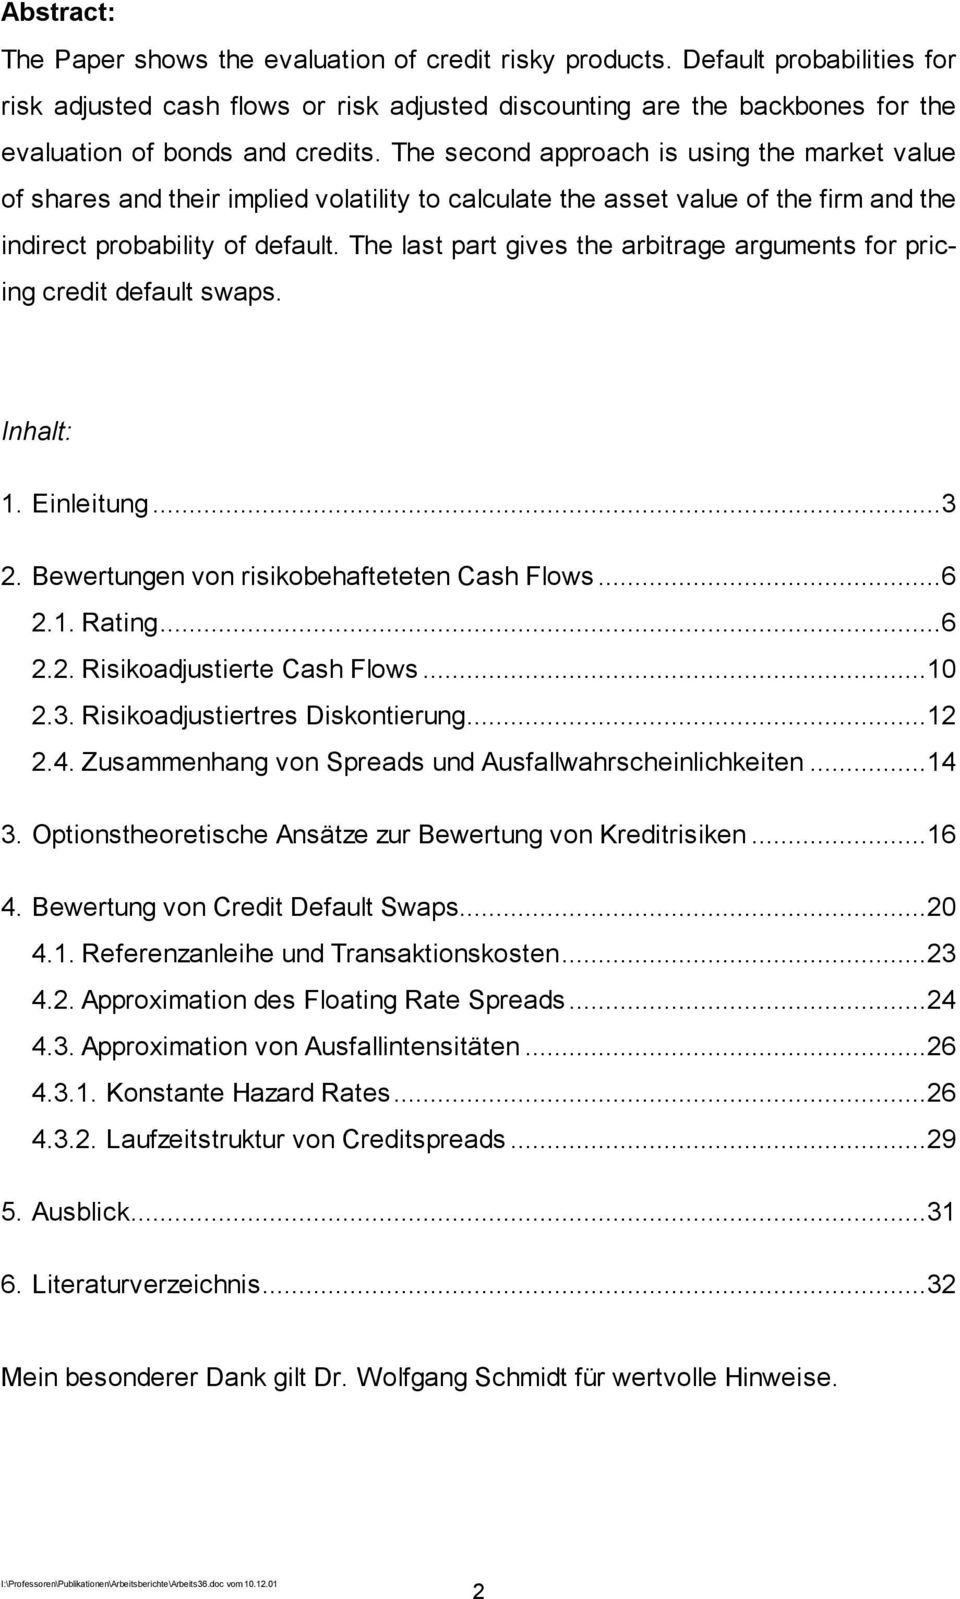 The last part gves the arbtrage arguments for prcng credt default swaps. Inhalt:. Enletung...3. Bewertungen von rskobehafteteten Cash Flows...6.. Ratng...6.. Rskoadjusterte Cash Flows...0.3. Rskoadjustertres Dskonterung.